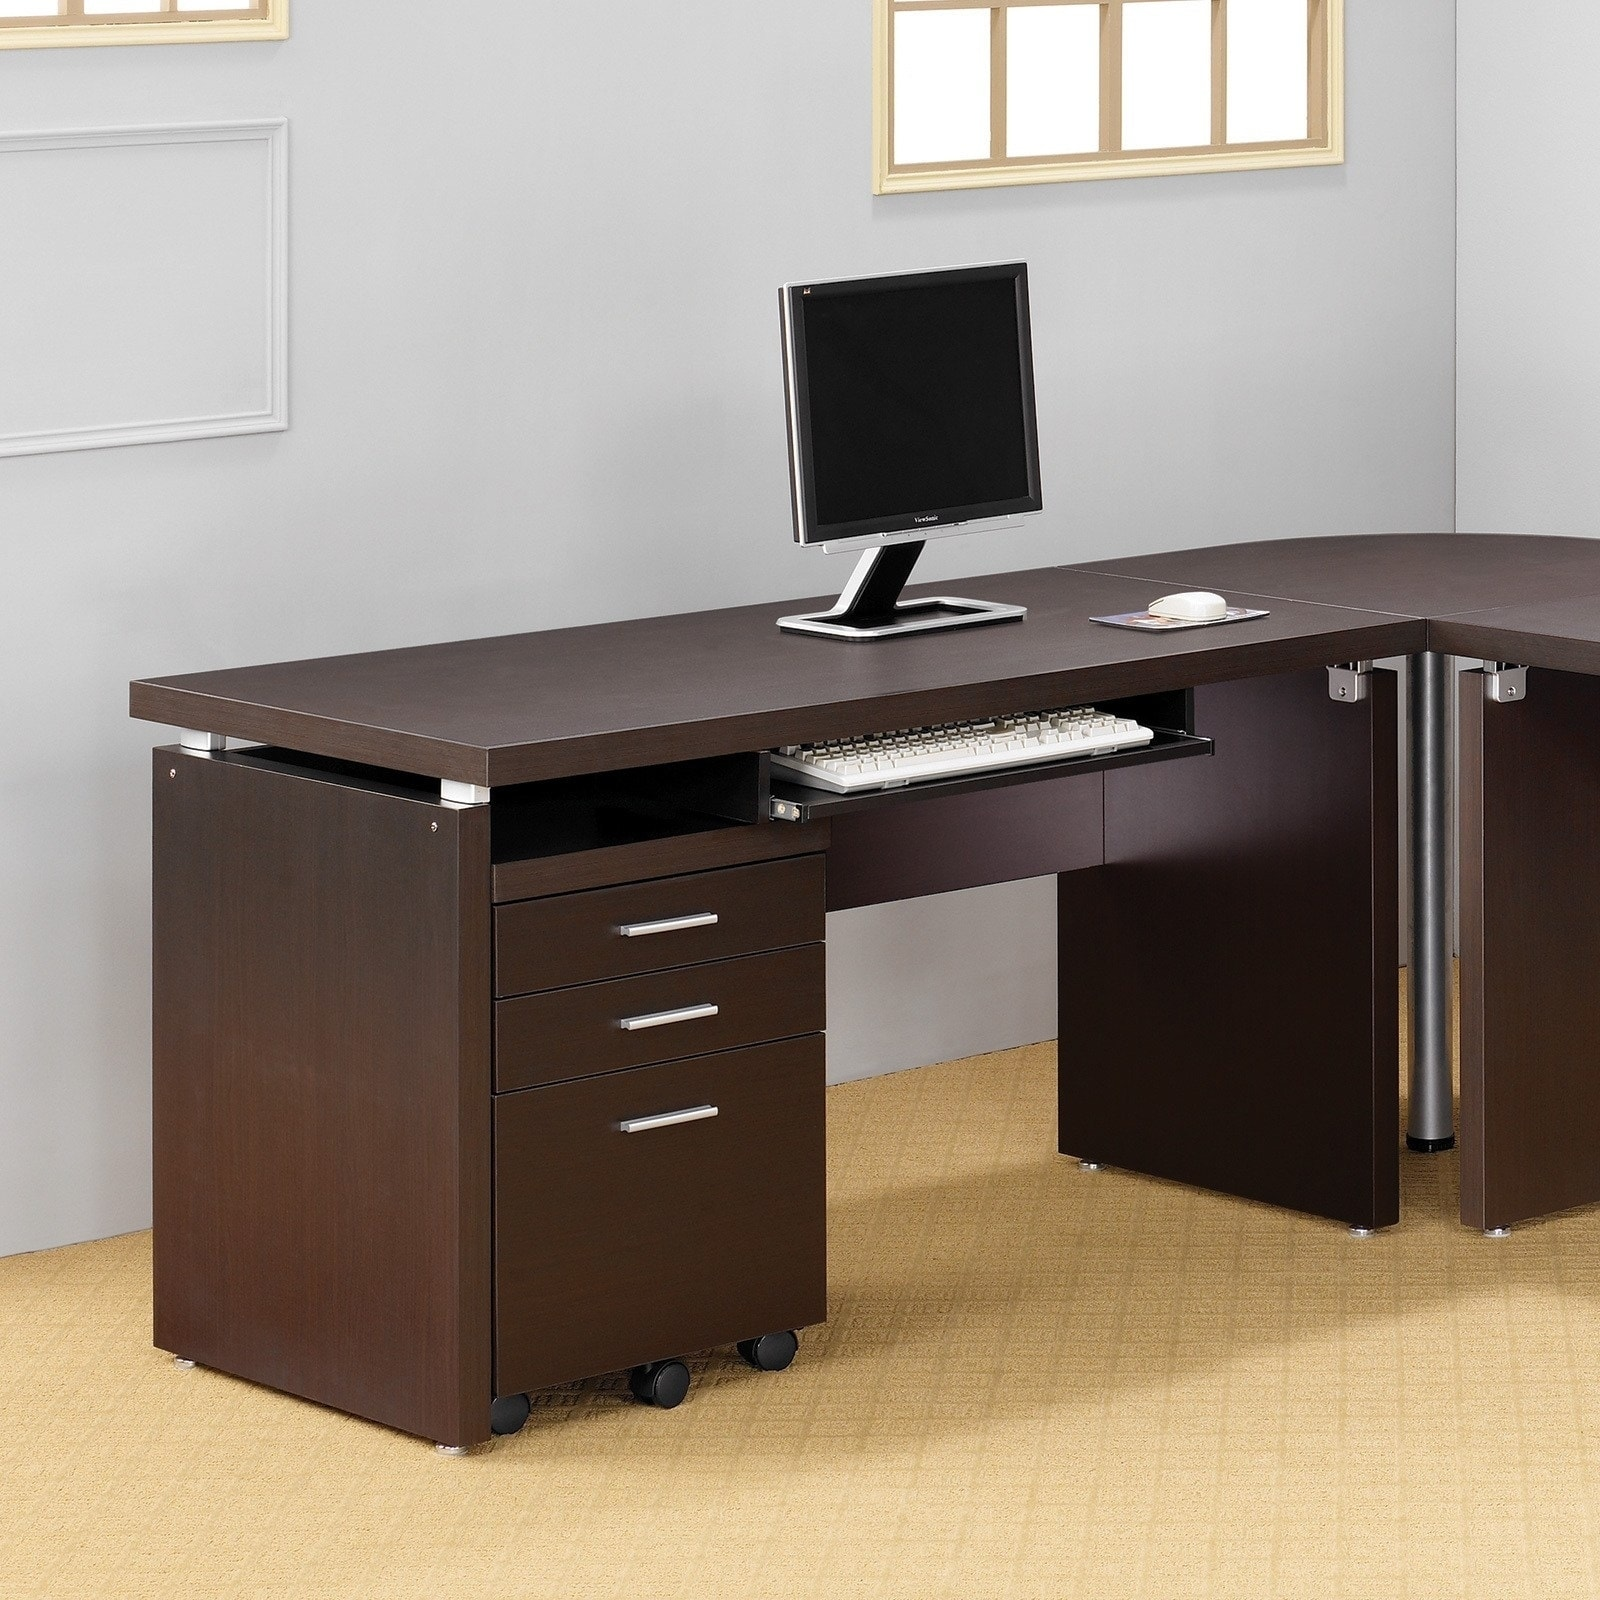 Shop Computer Desk With Keyboard Tray In Cappuccino   Free Shipping Today    Overstock.com   6304932